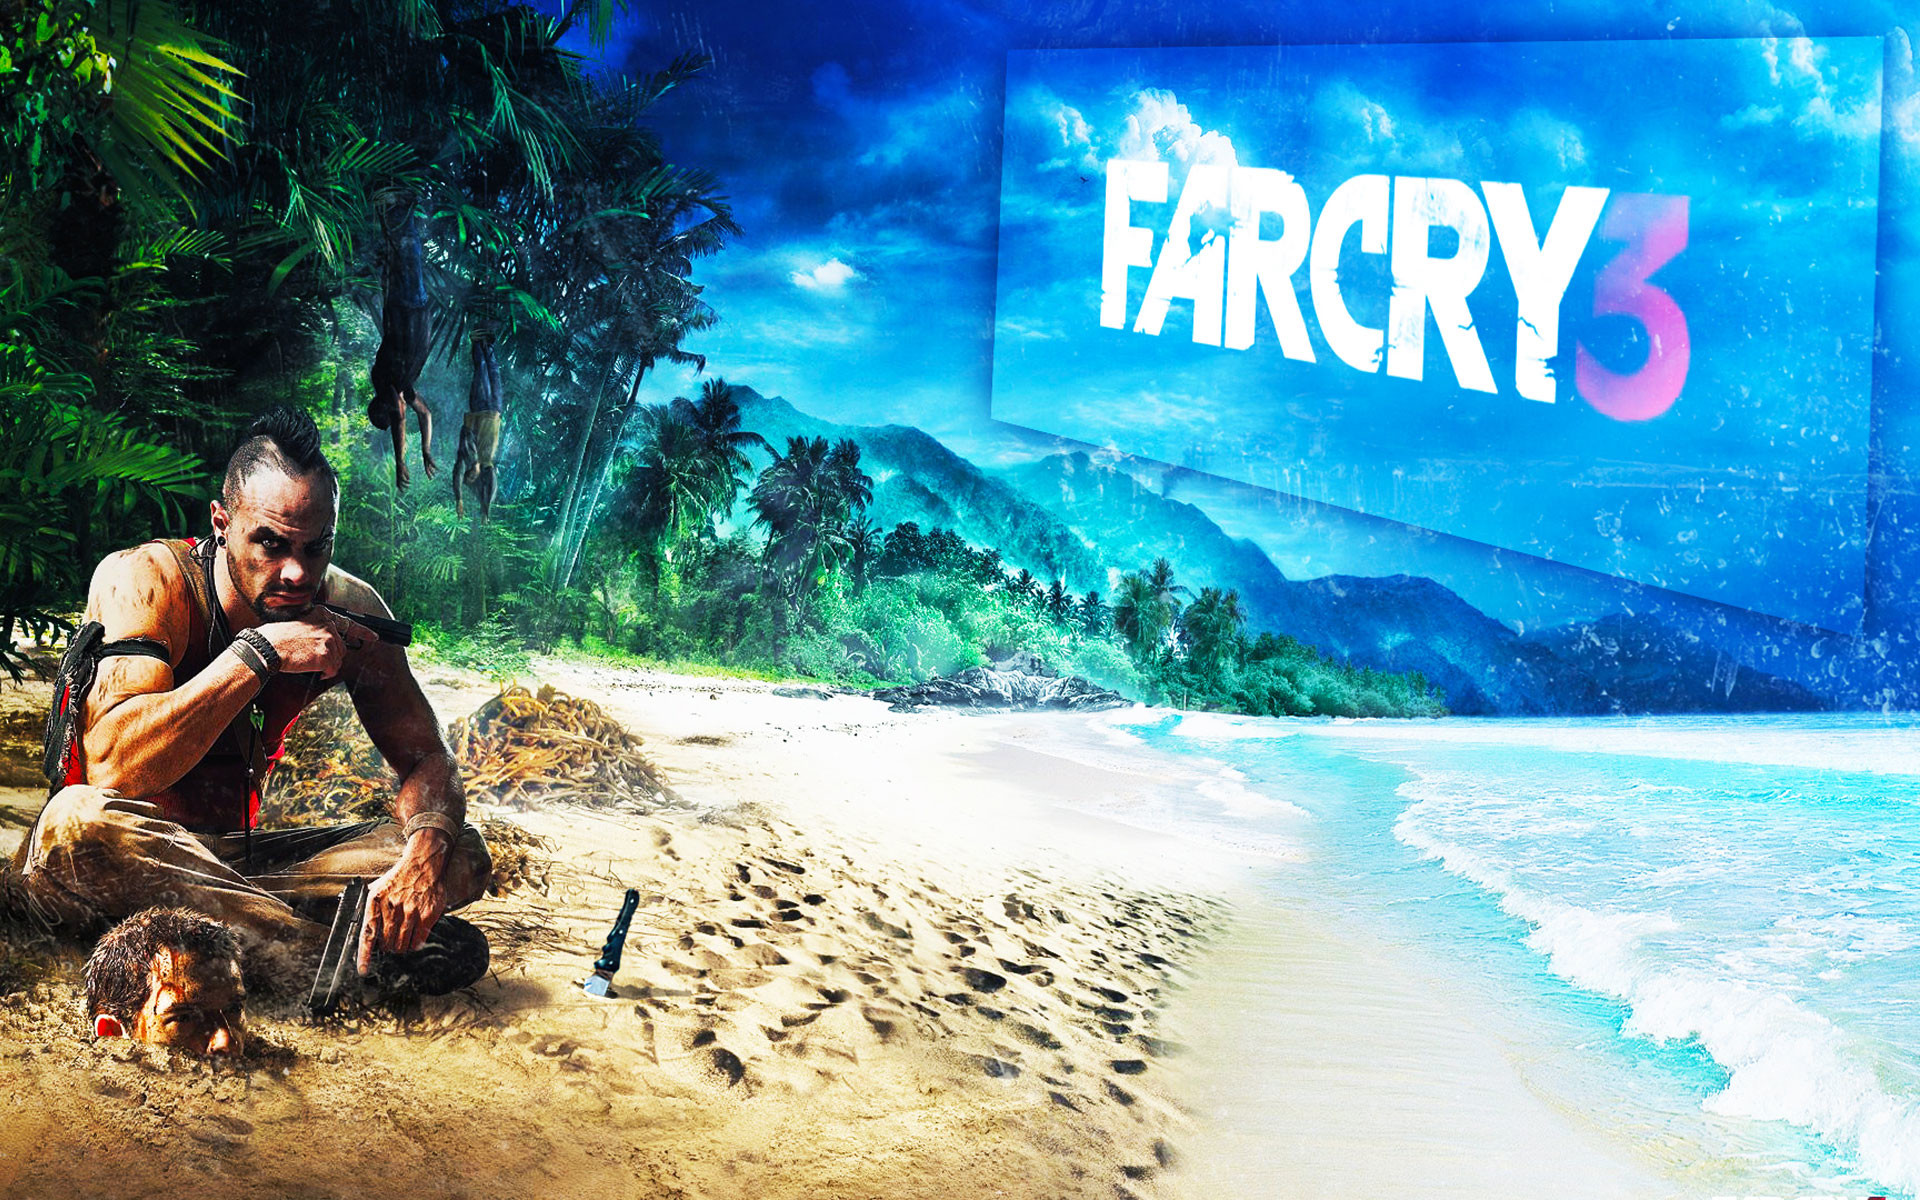 1920x1200 Awesome Far Cry 3 Wallpaper